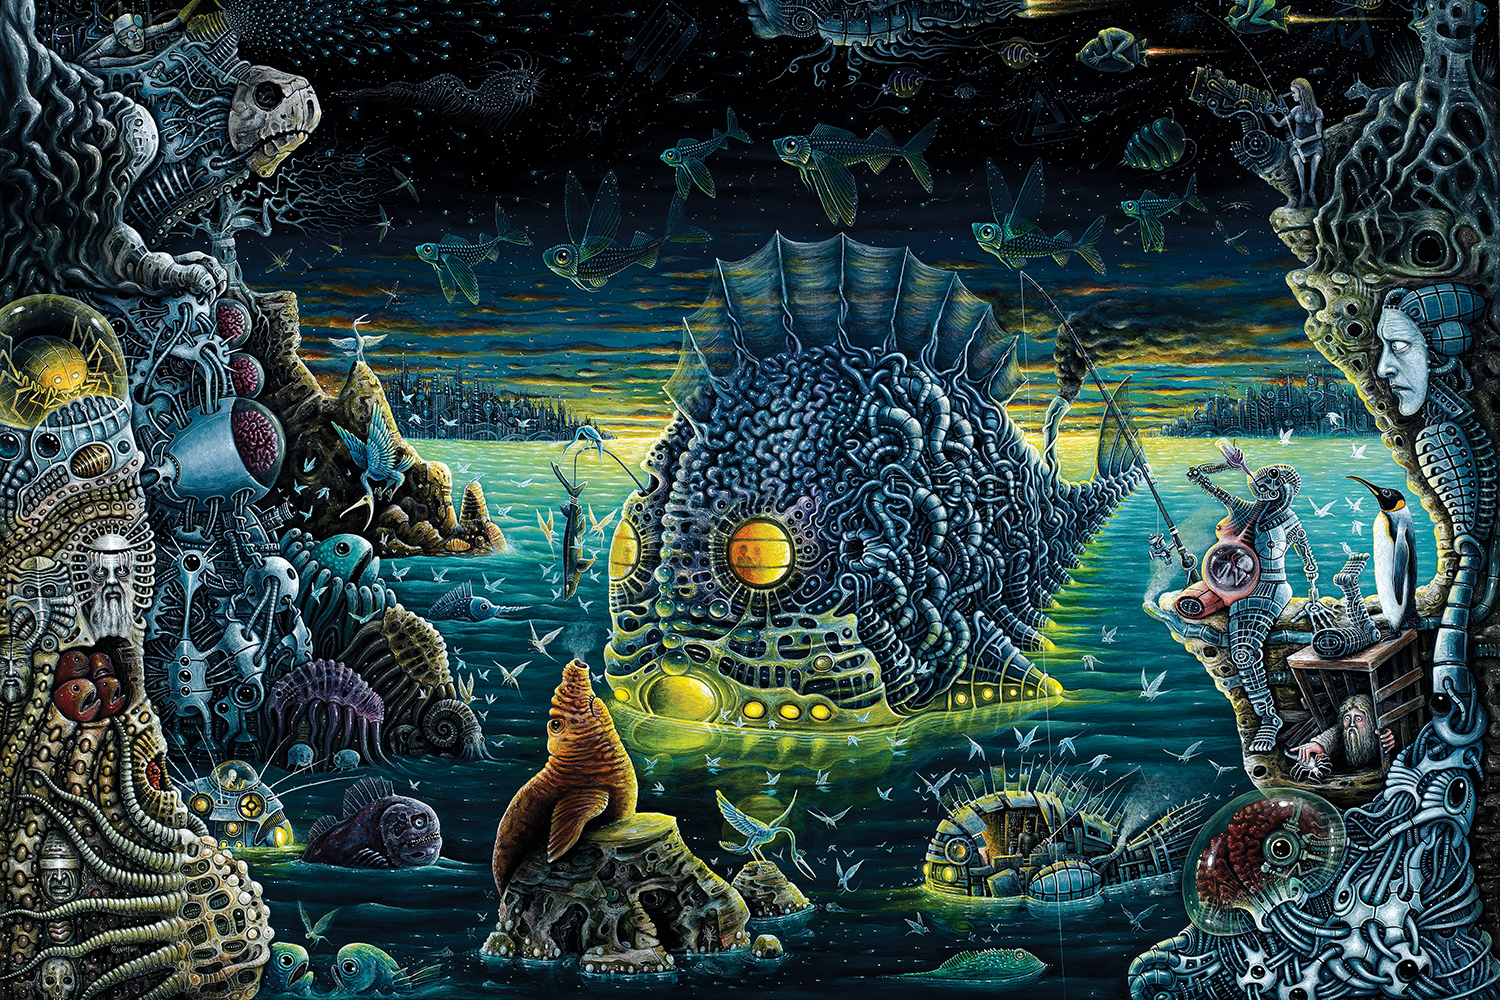 Large angler fish made of metal glowing and floating in water surrounded by other machines, flying fish, and beings